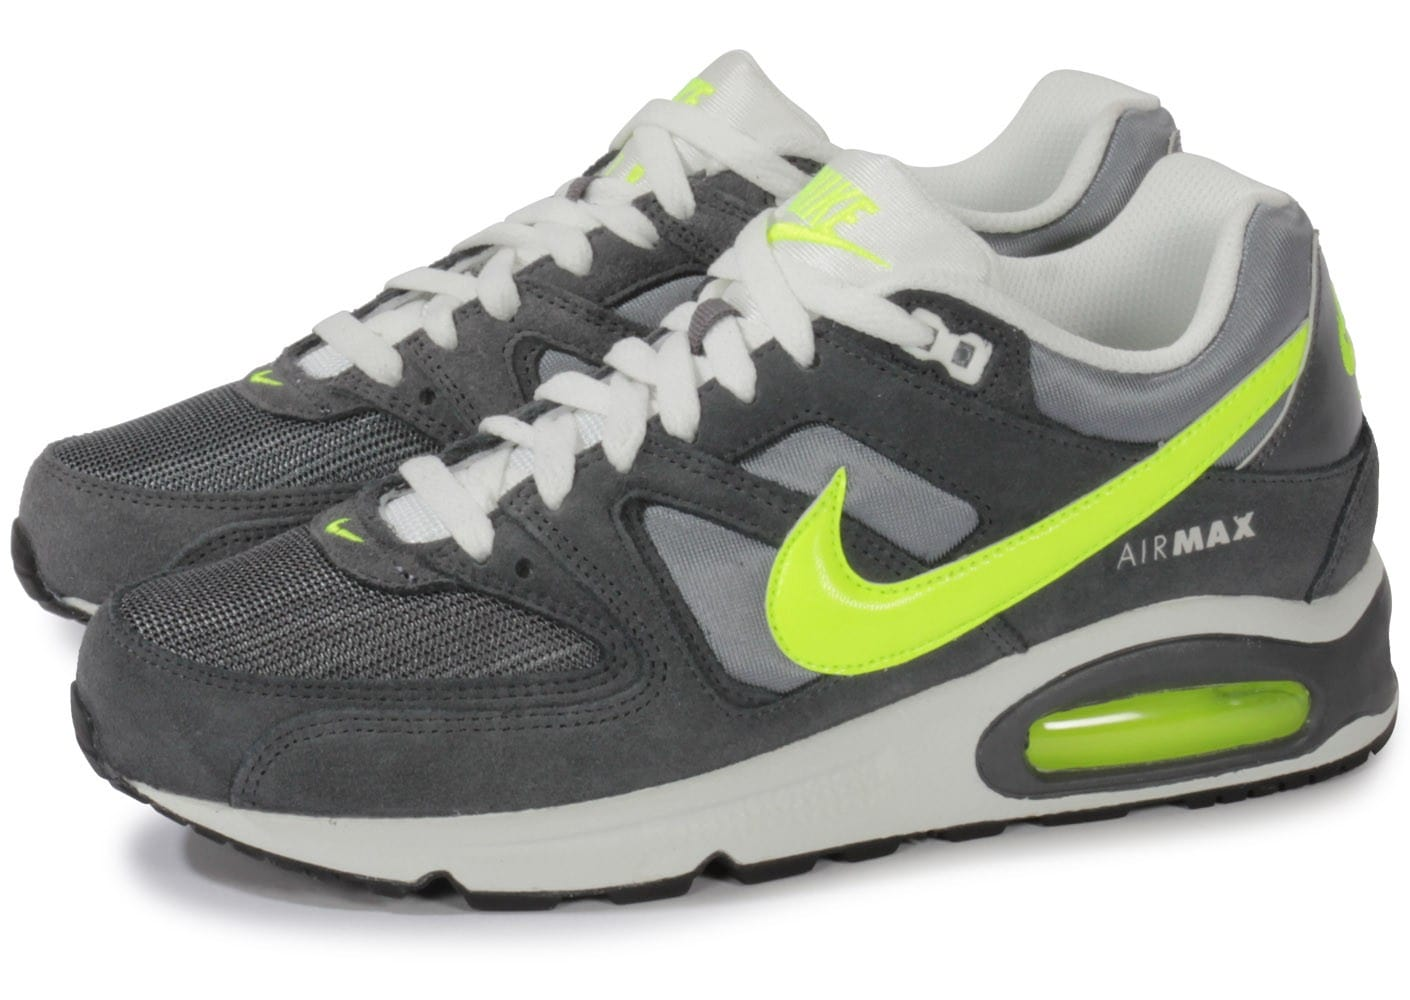 acheter populaire 94761 23163 Nike Air Max Command Grise - Chaussures Baskets homme ...